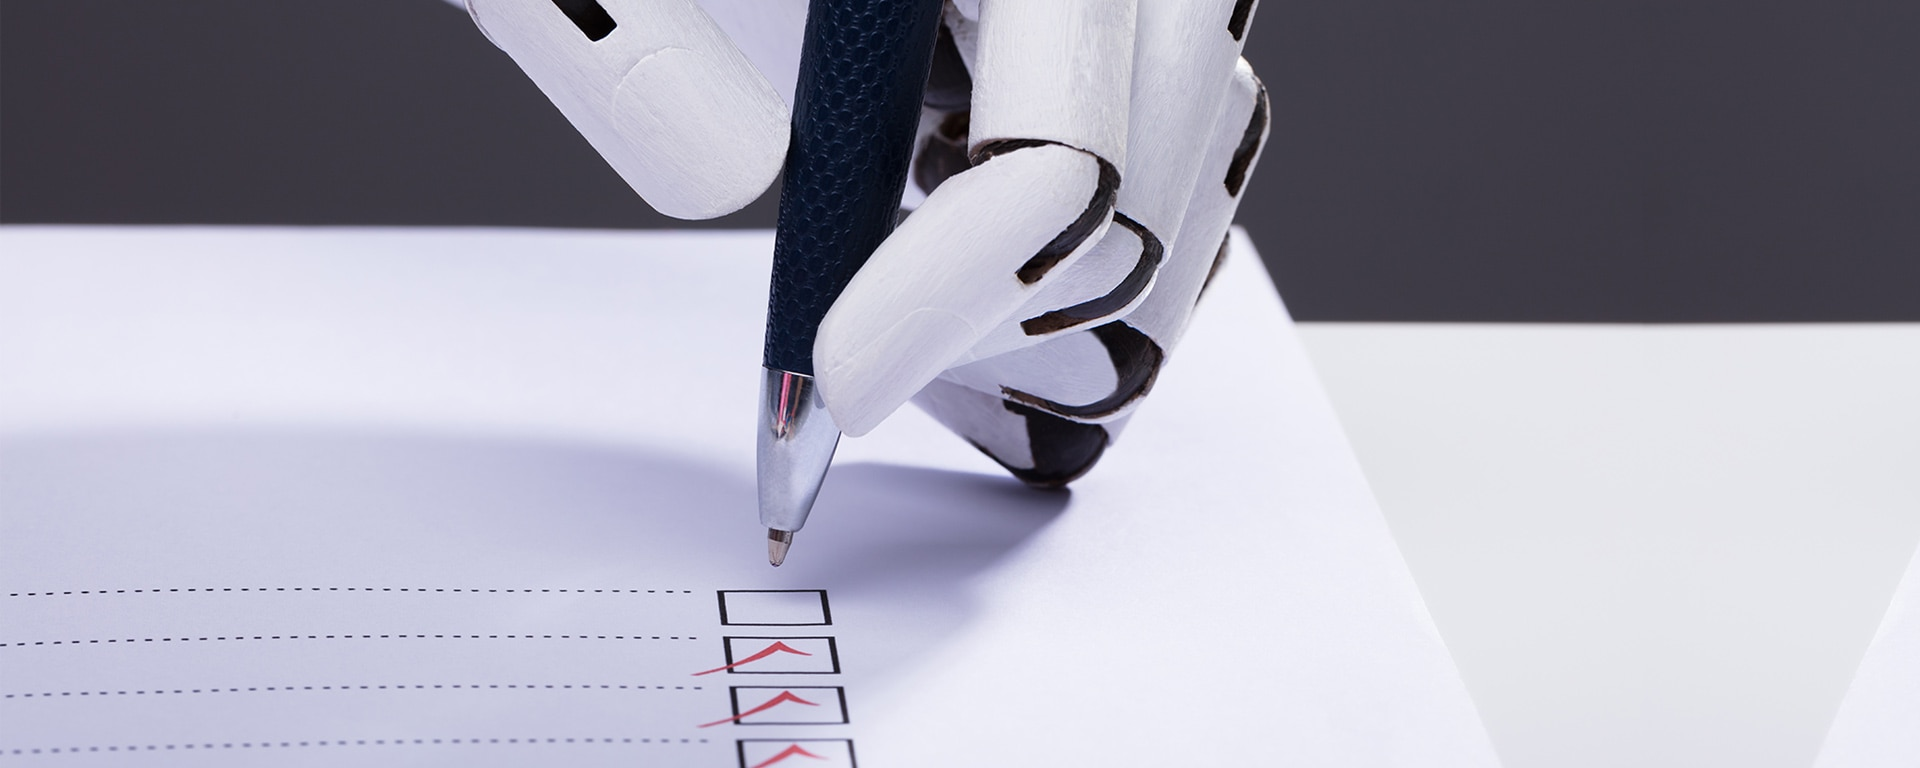 rpa implementation challenges blog image - robot ticking boxes